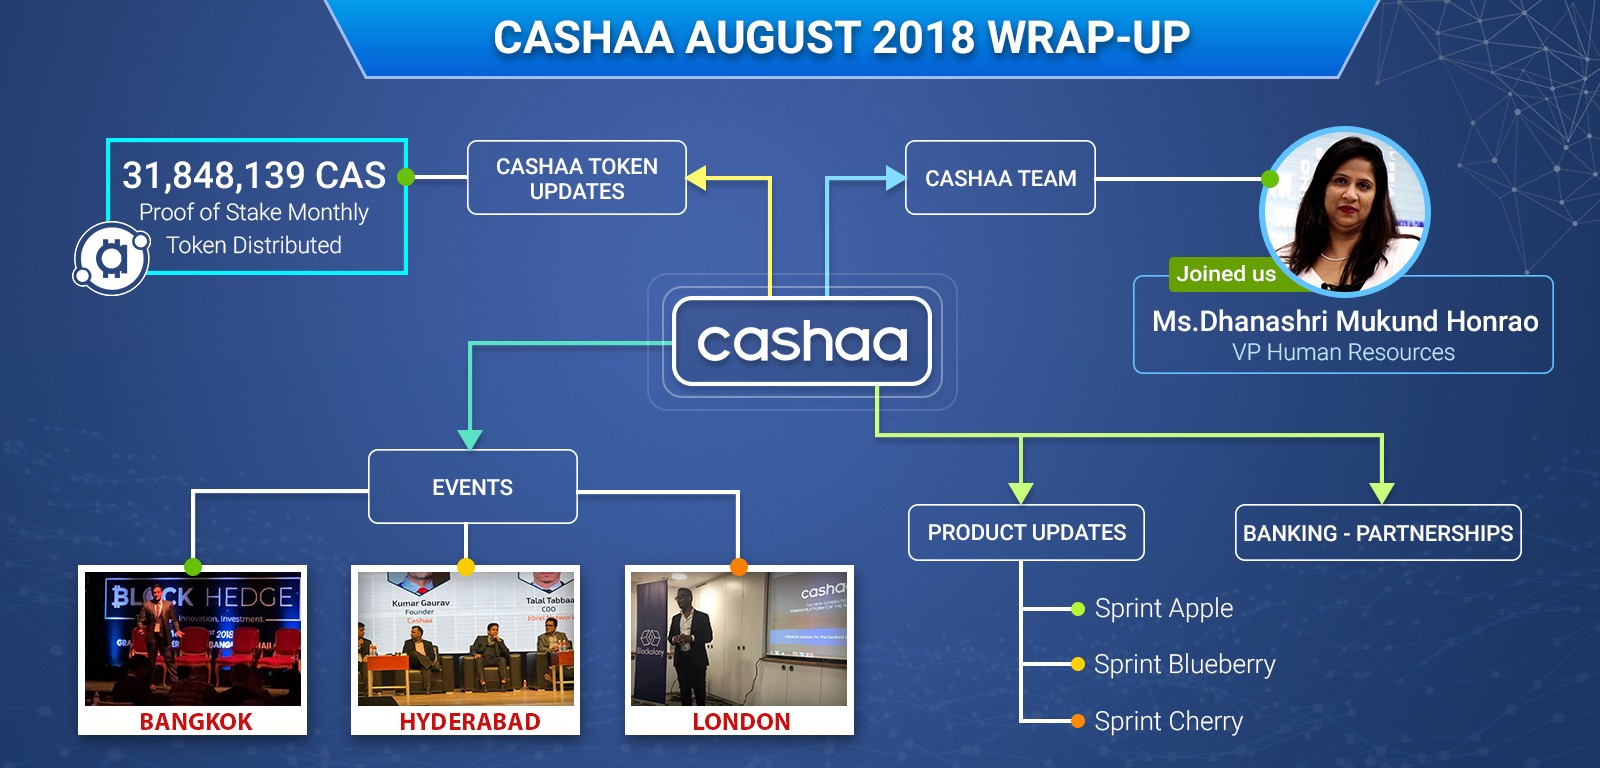 Cashaa Road Map and Cashaa August 2018 Recap